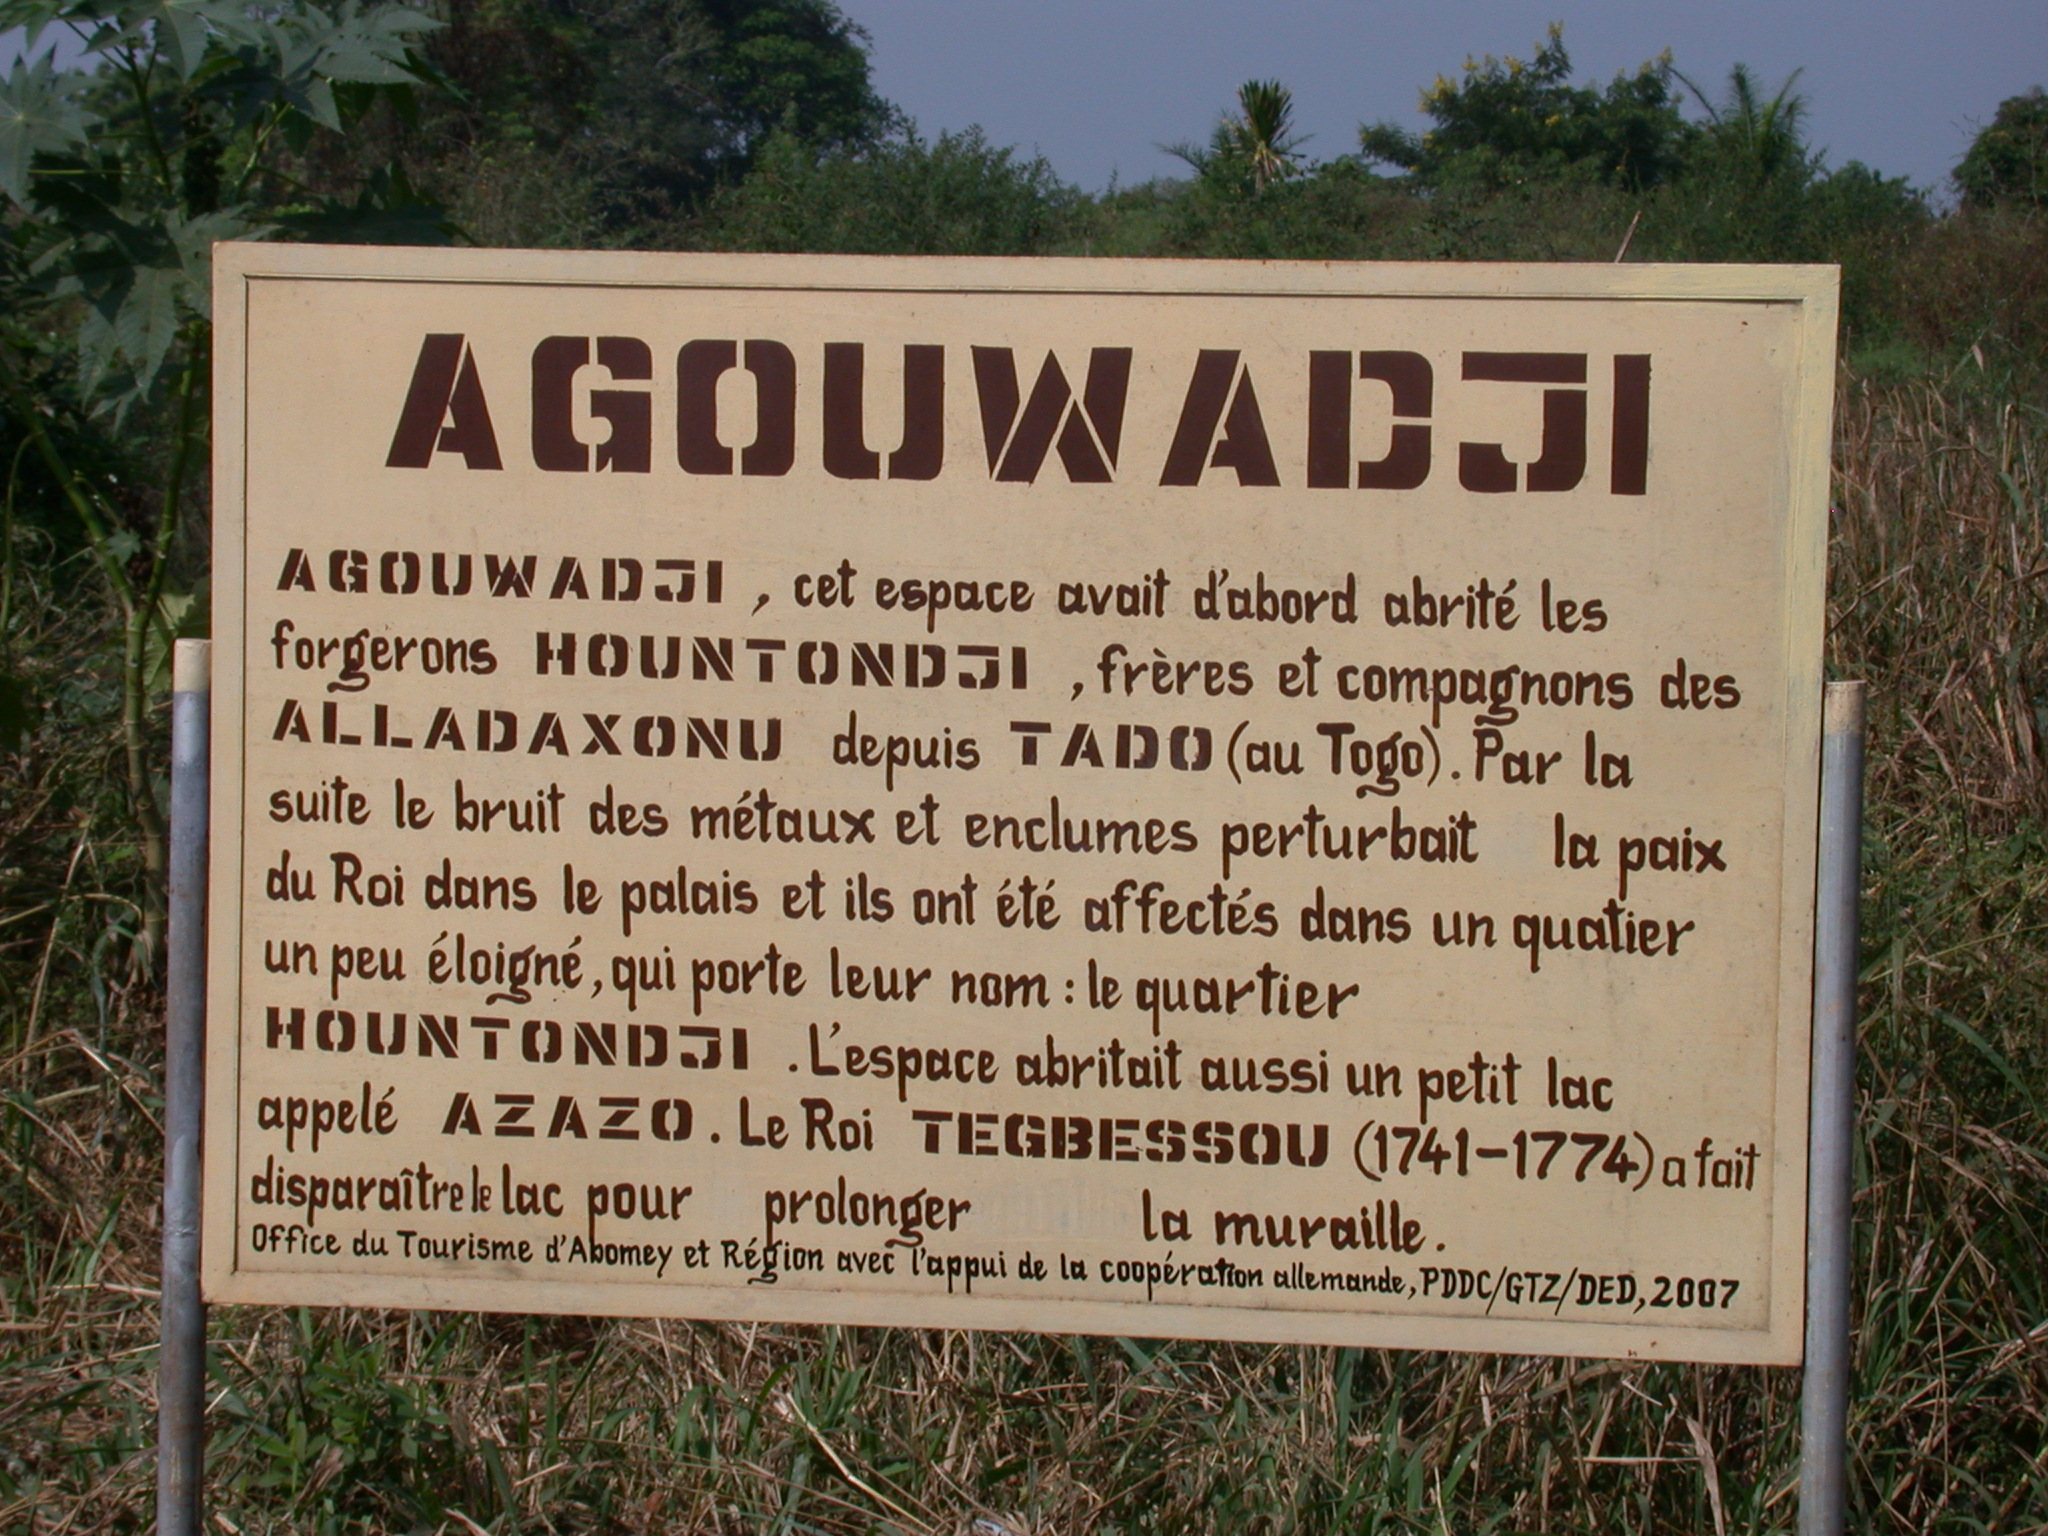 Sign for Agouwadji Blacksmith Shelter, Abomey, Benin